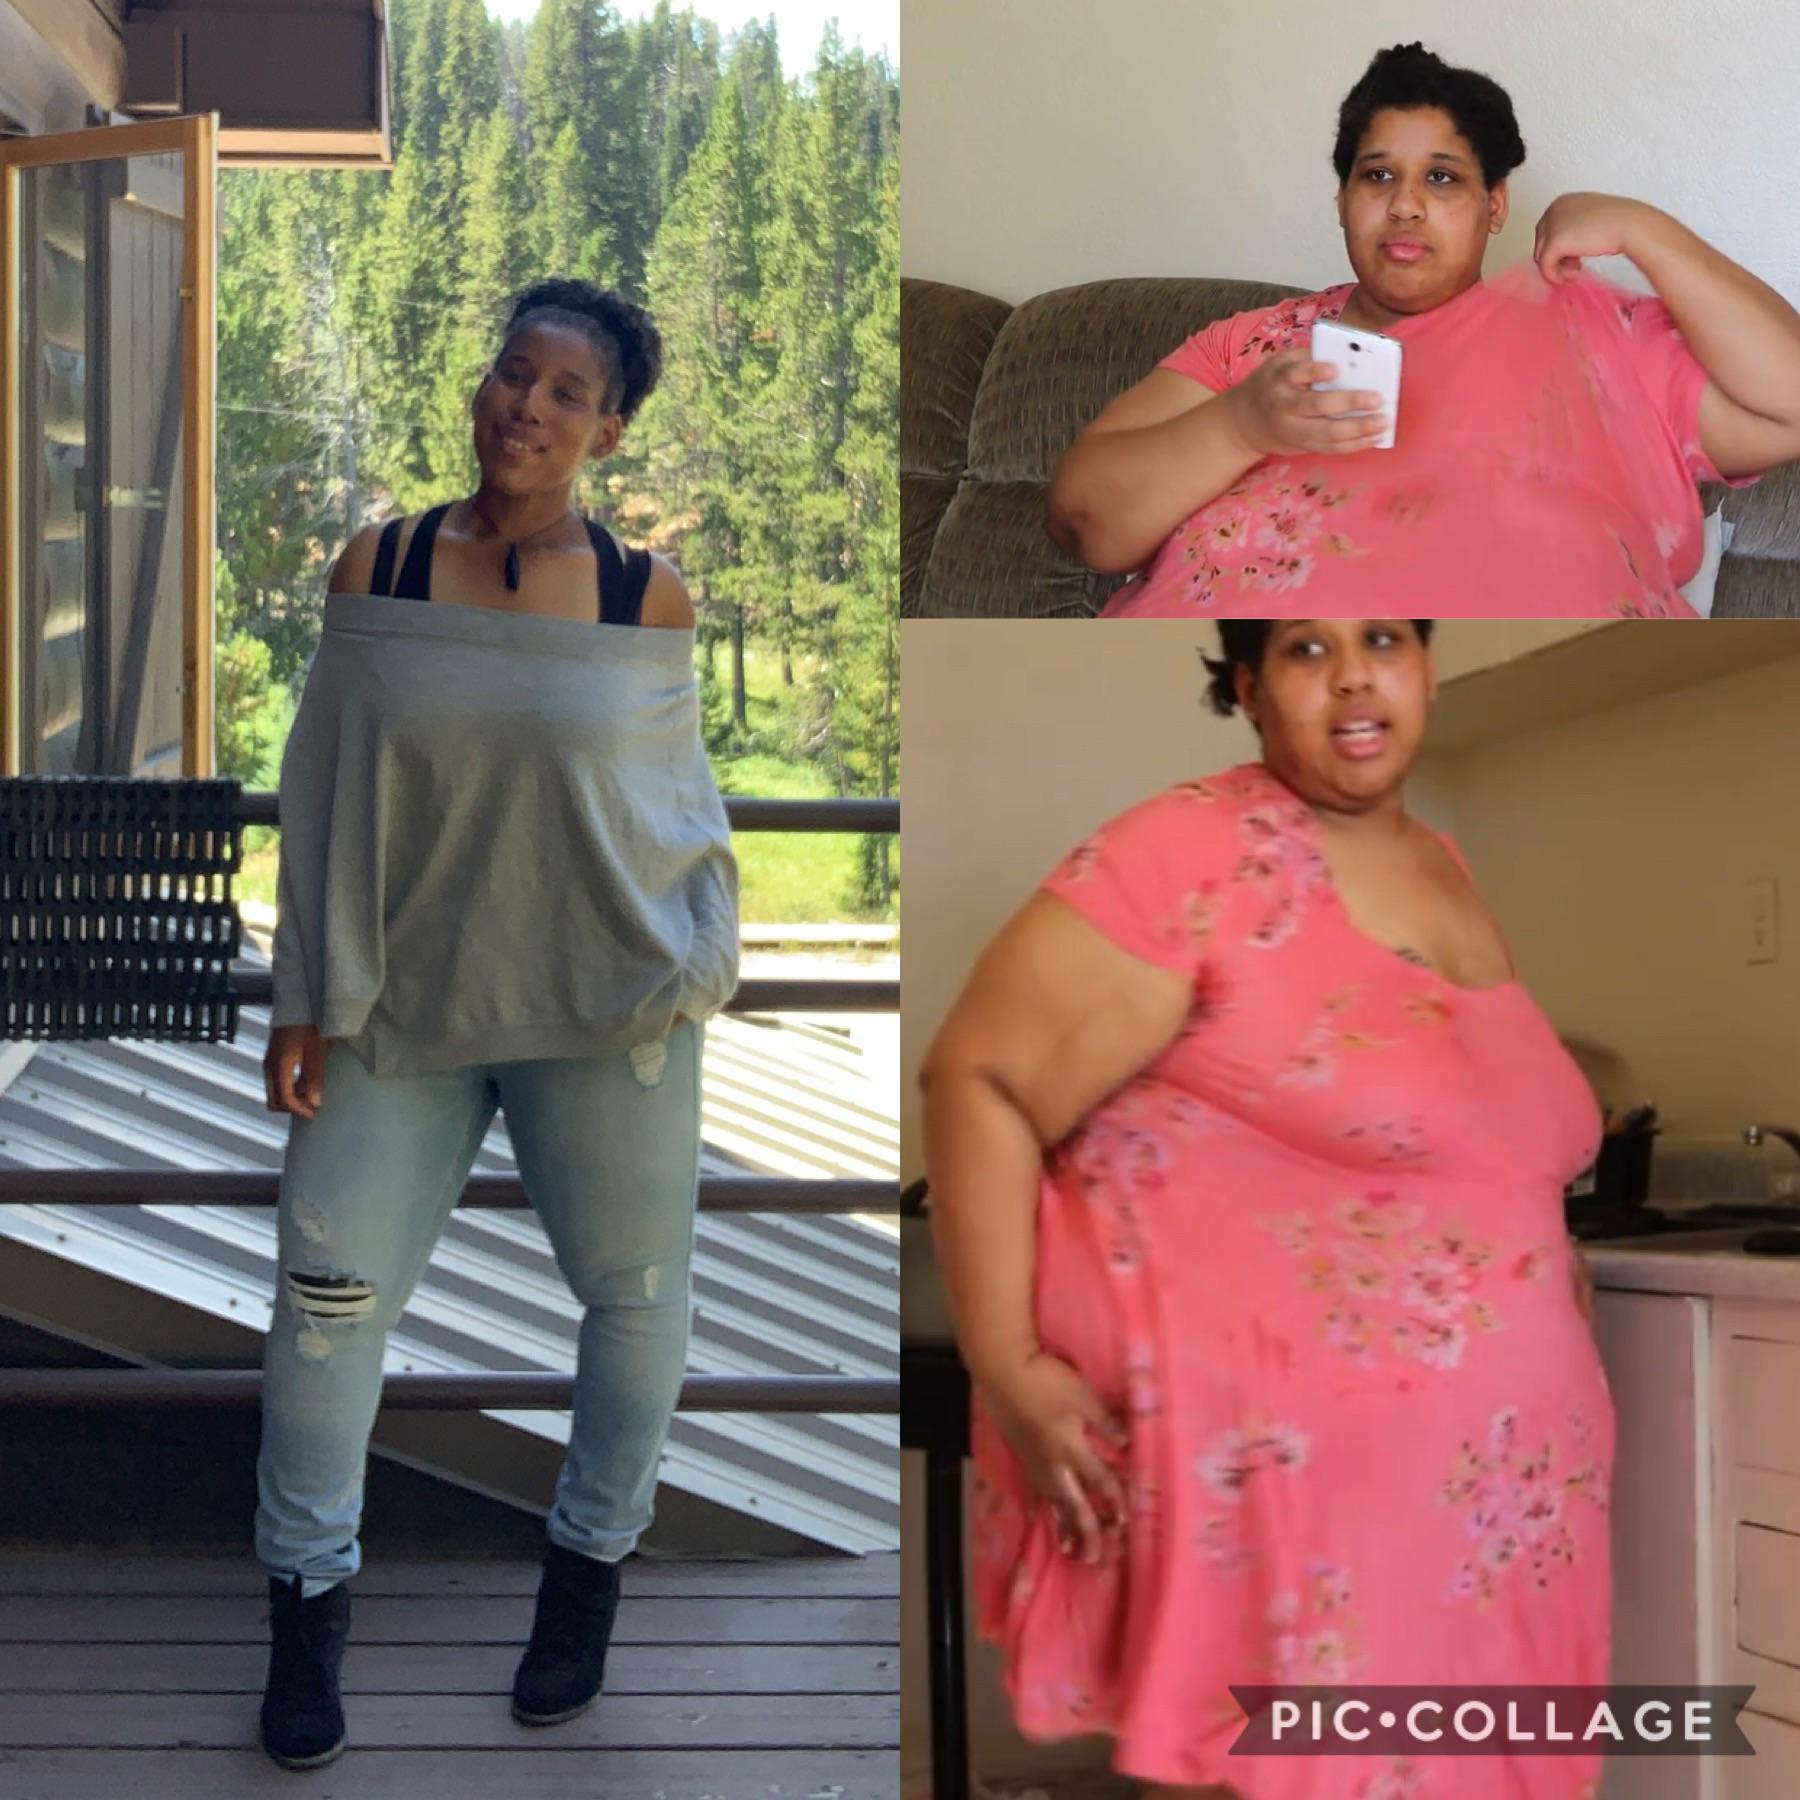 285 lbs Weight Loss Before and After 5'5 Female 480 lbs to 195 lbs